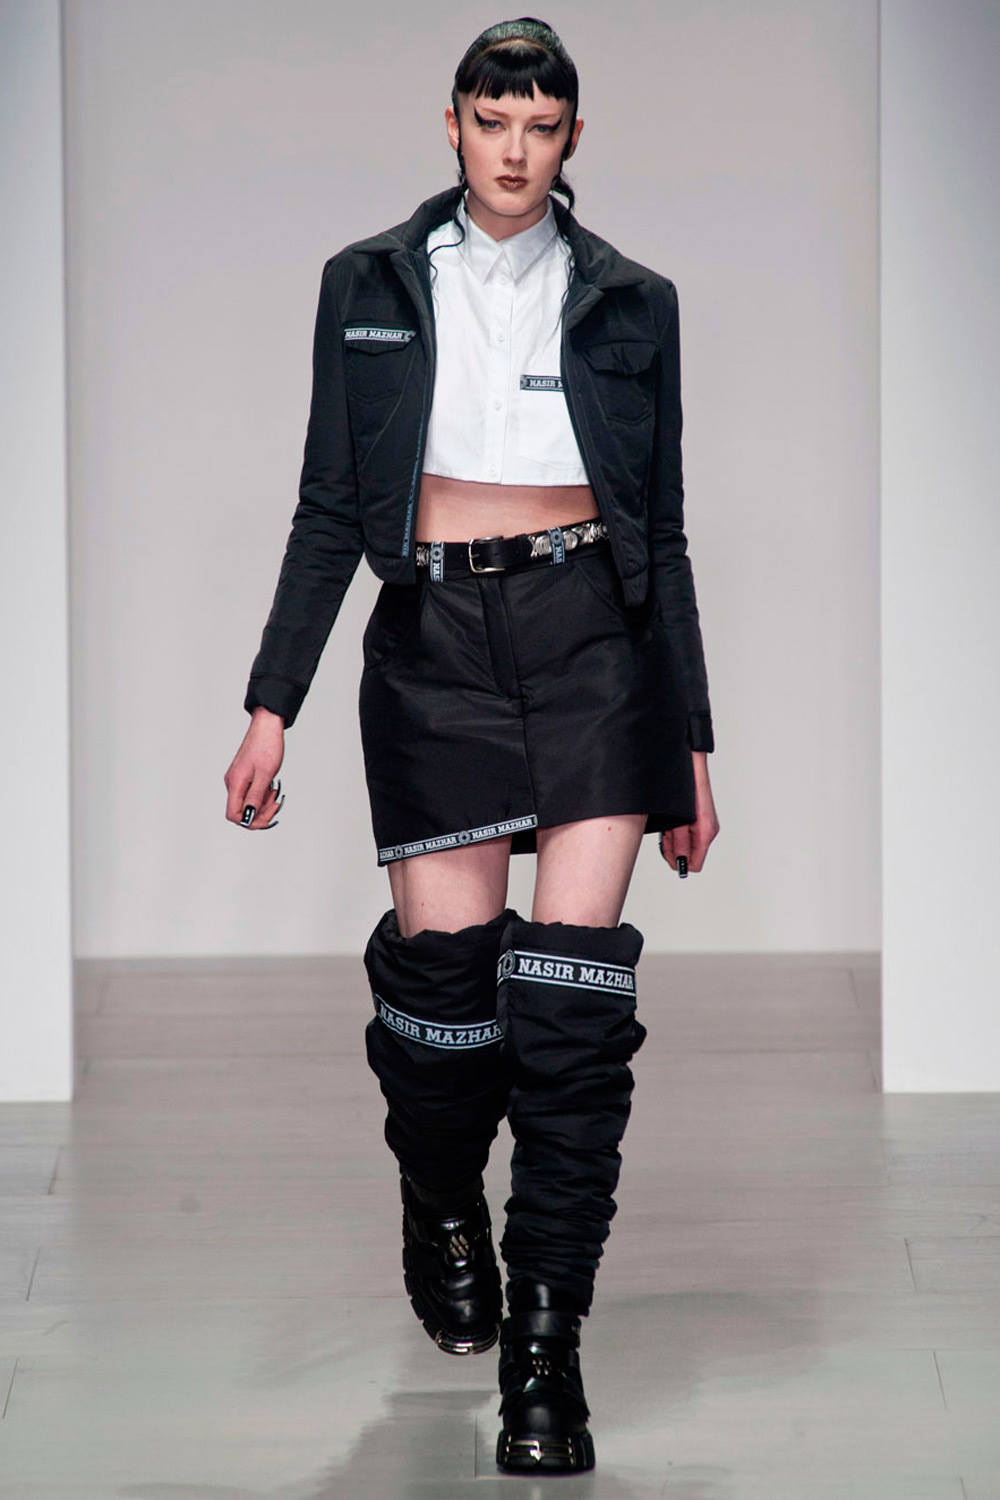 Health Goth: The Latest Trend You've Never Heard Of